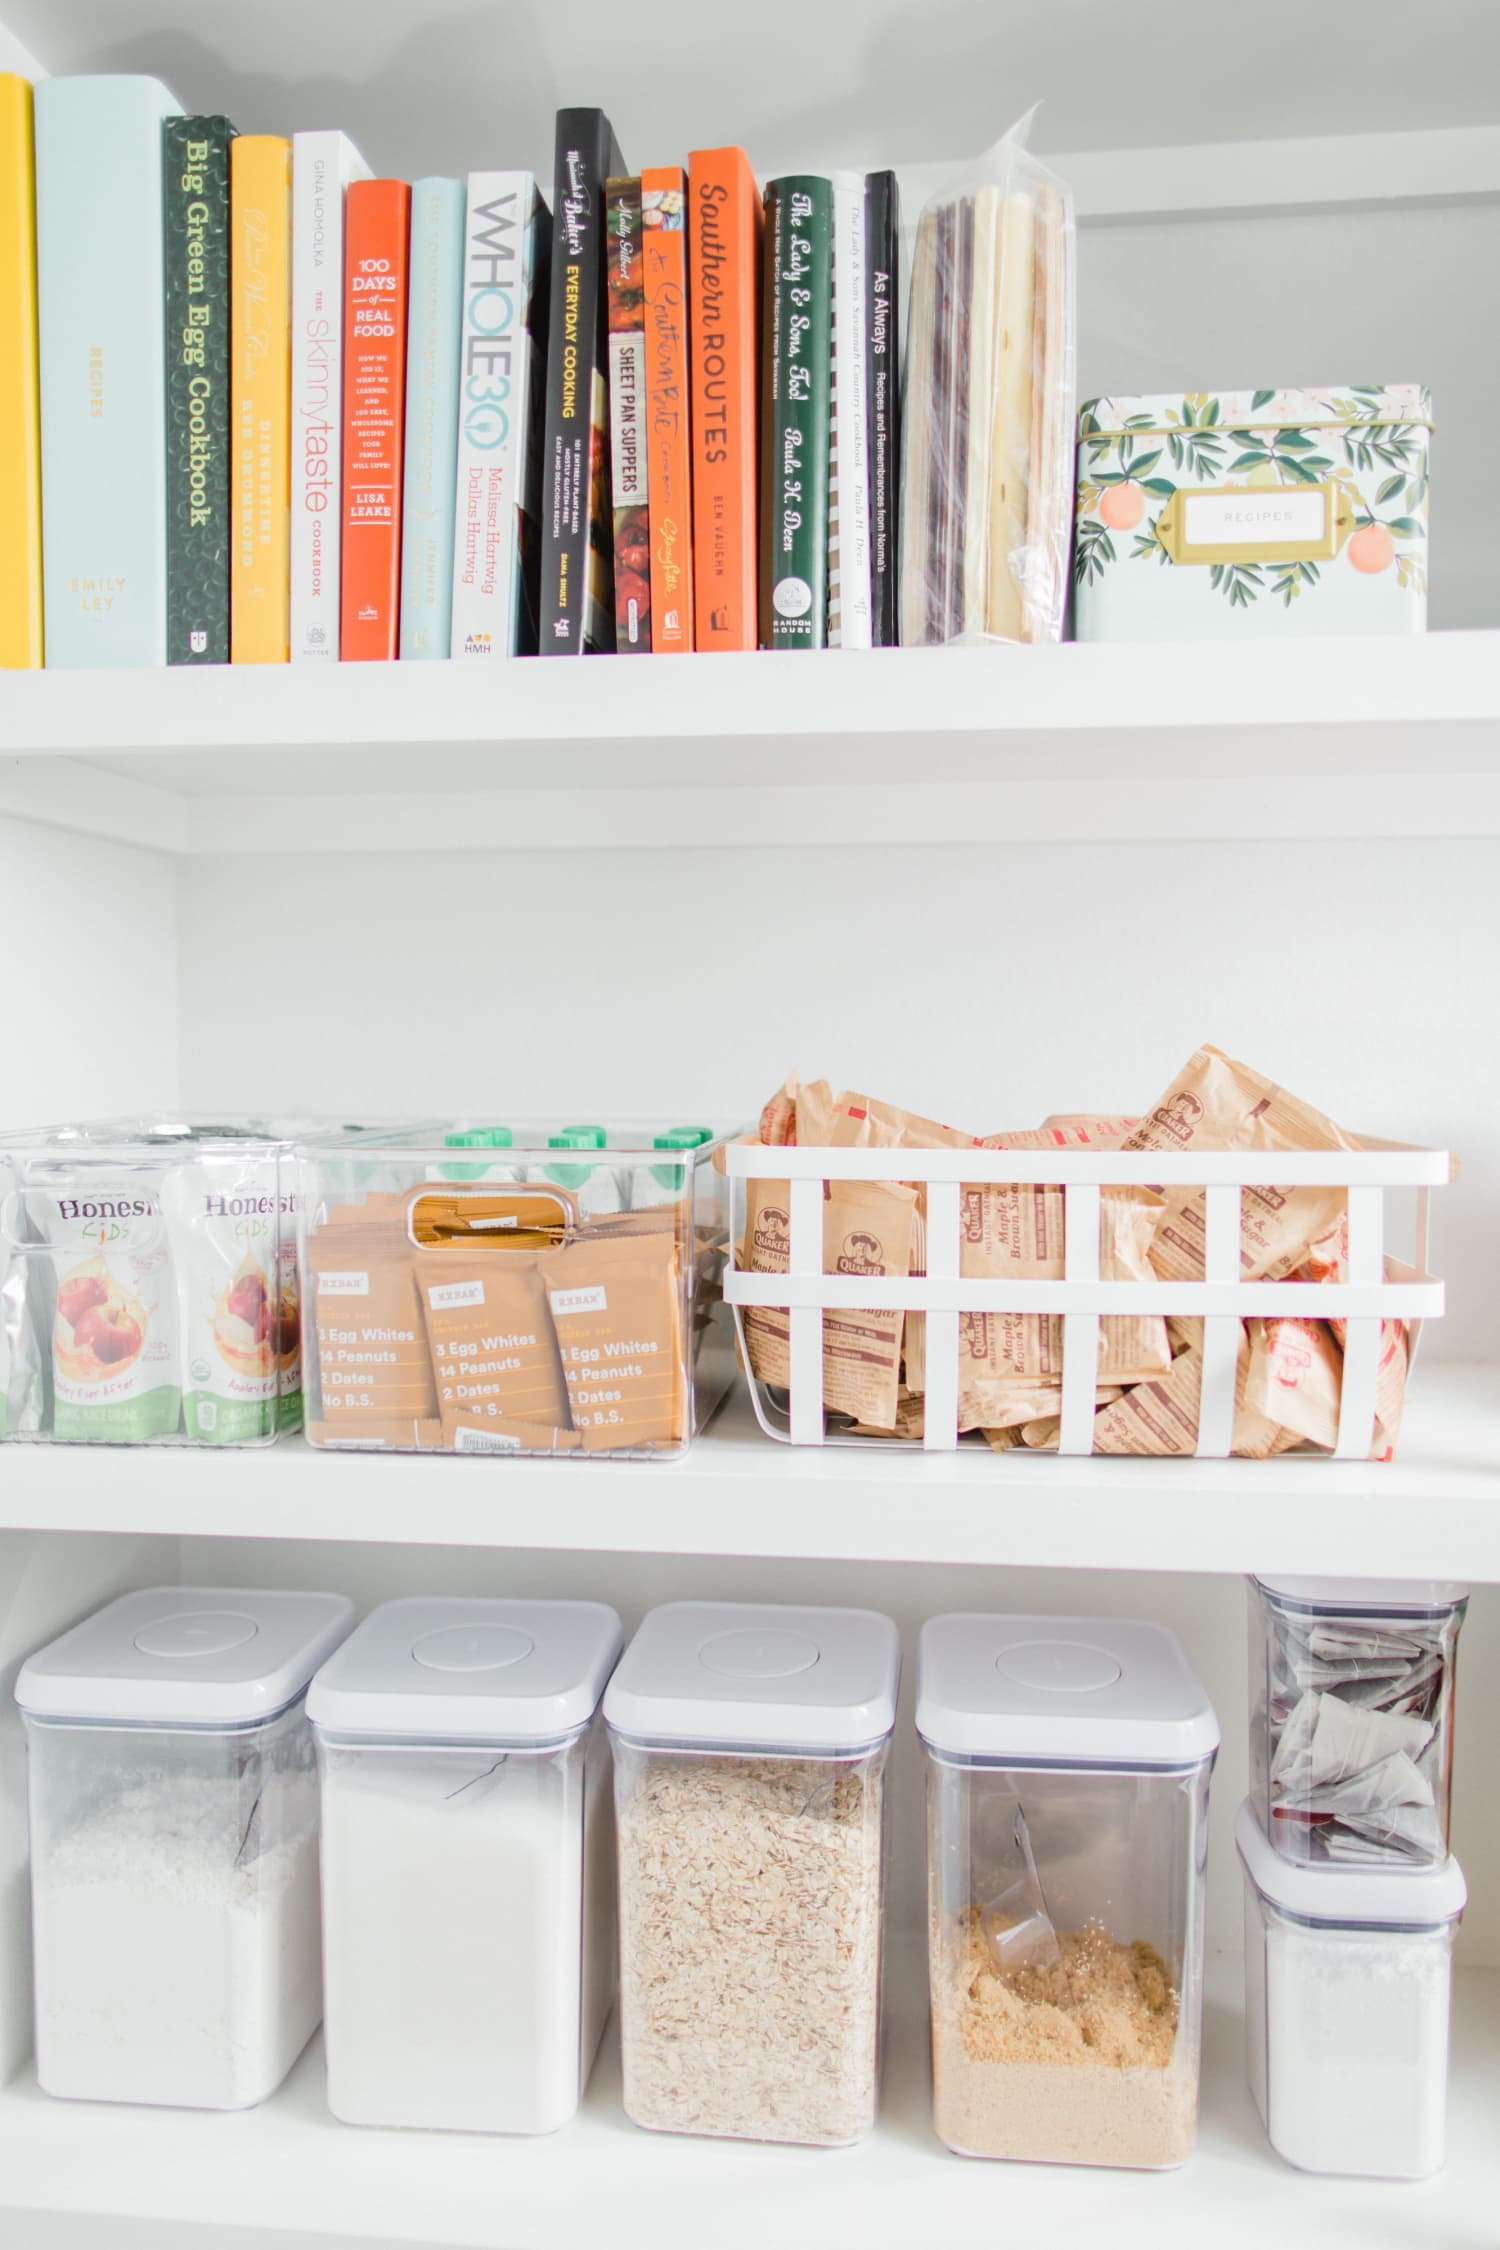 This Japanese Home Brand Is the Best Place to Find Minimalist Kitchen Storage